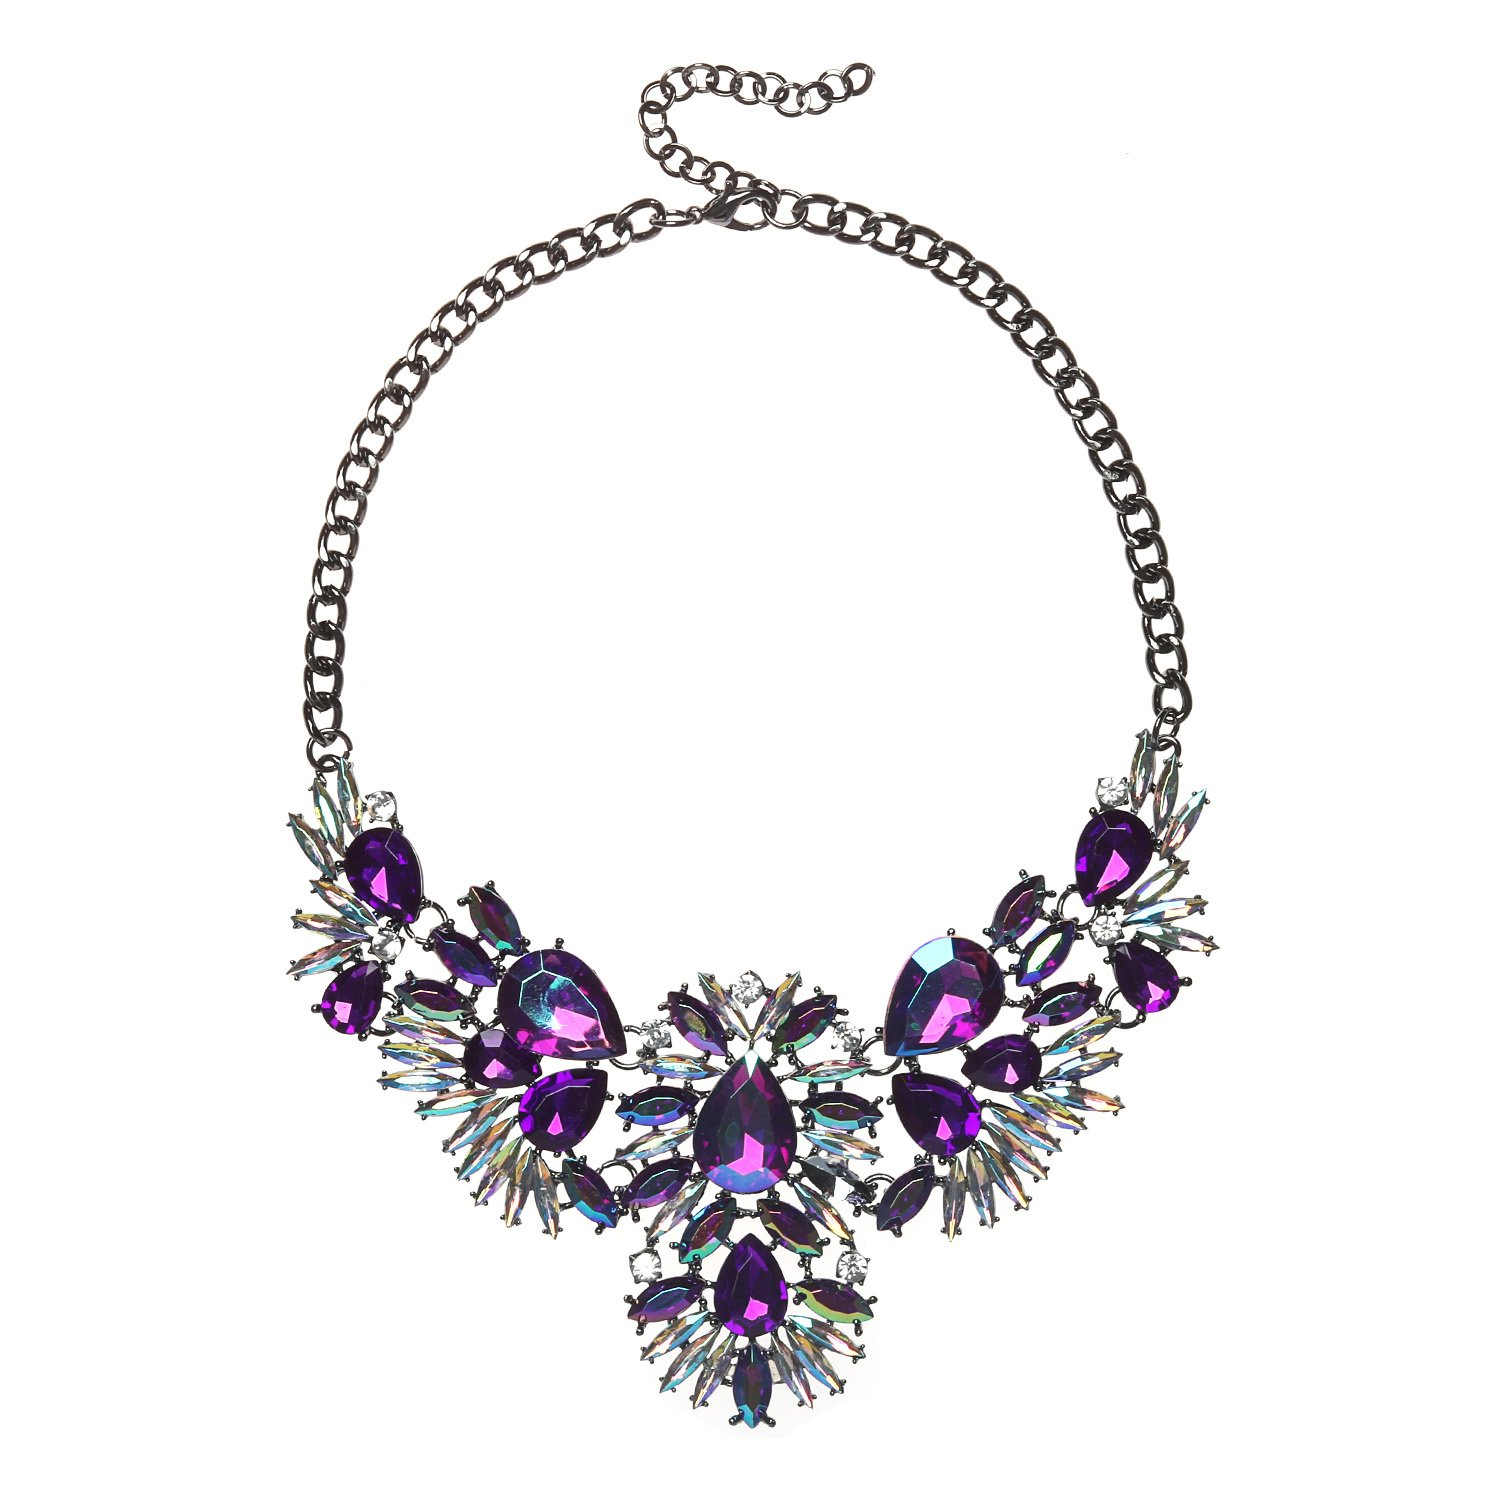 Holylove Charming Choker Necklace in Purple Glass Beads & Crystal with Gift Box- HLN00021 Purple